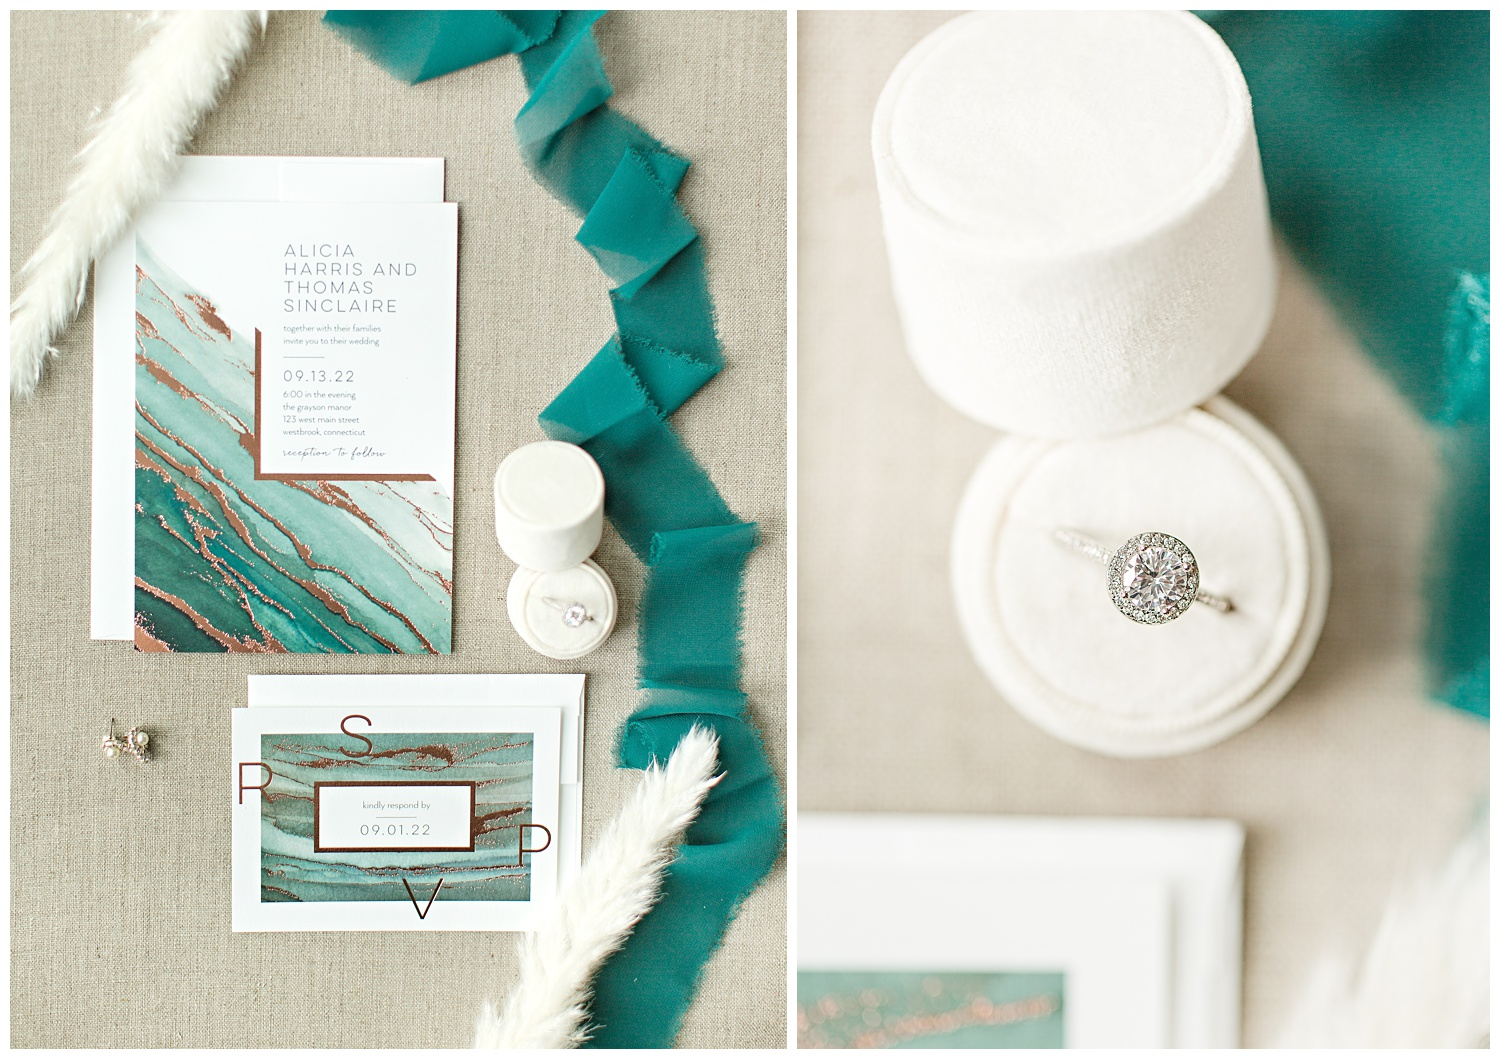 Teal watercolor and copper foil stamped wedding invitation suite from Shutterfly beautifully styled with pampas grass, cream ring box and teal frayed edge ribbon.